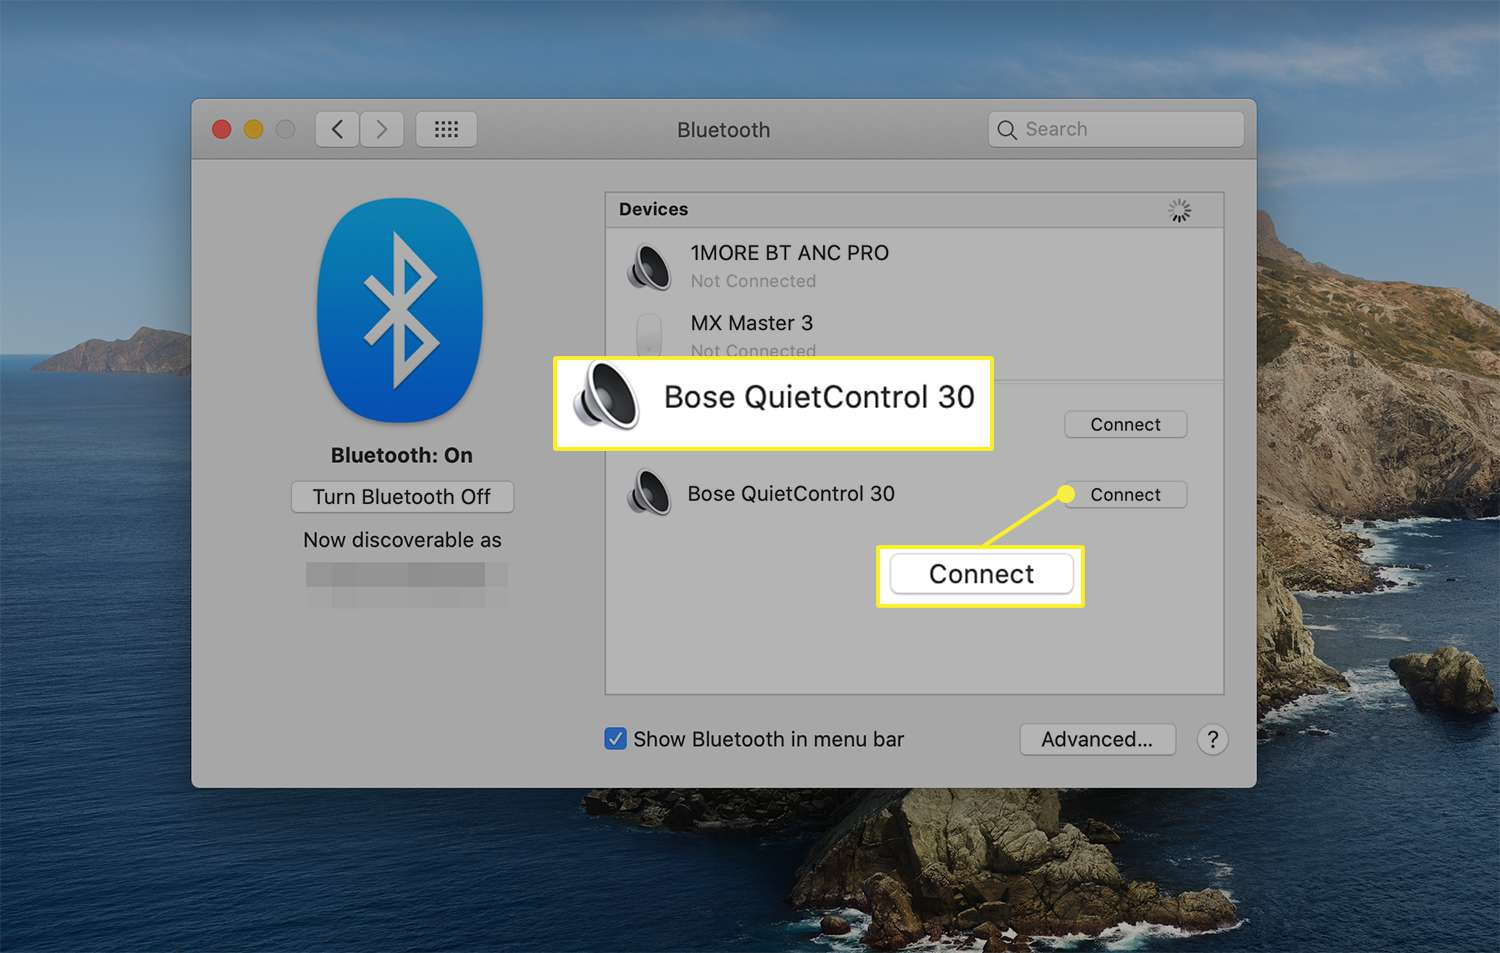 Connect option next to an available wireless device from macOS Bluetooth preferences